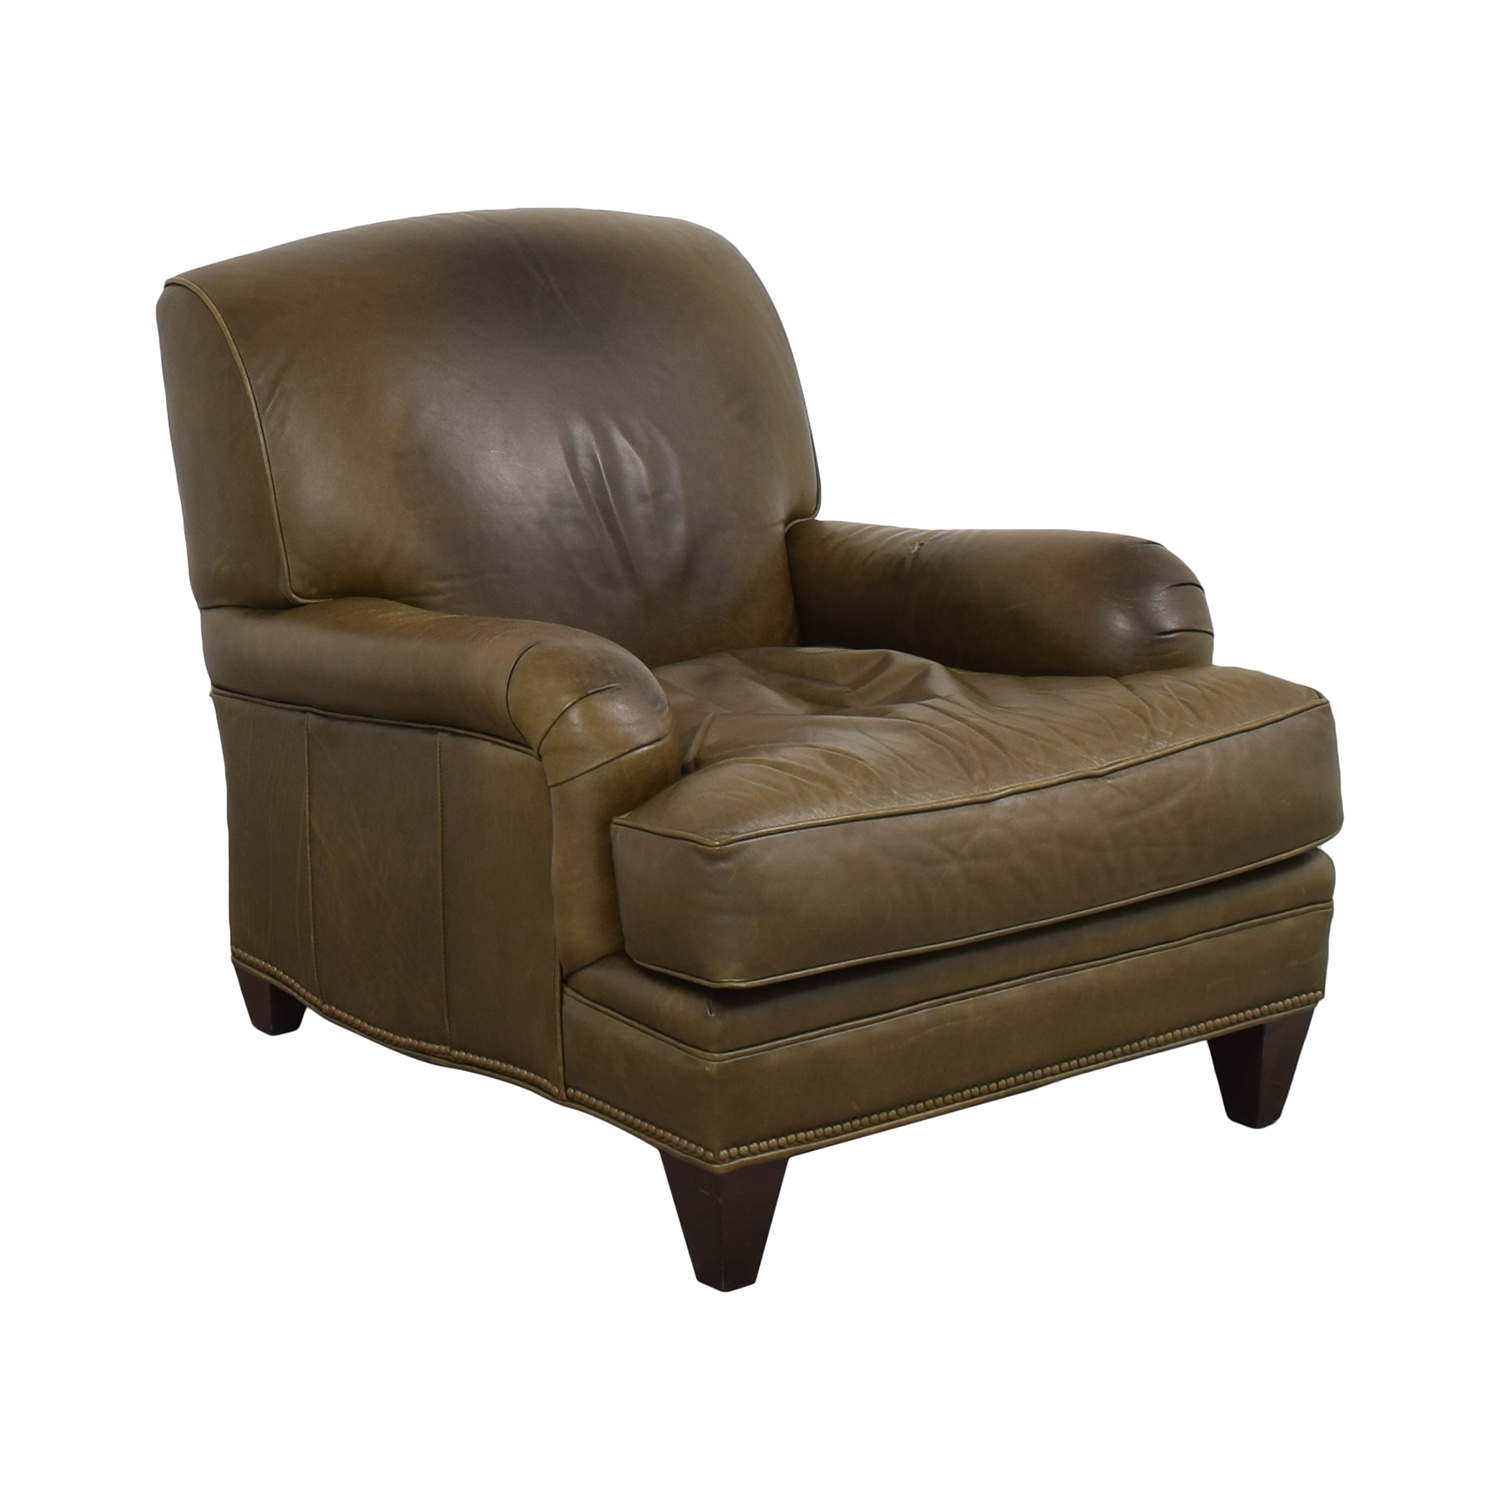 Macy's Macy's Modern Concepts Club Chair second hand